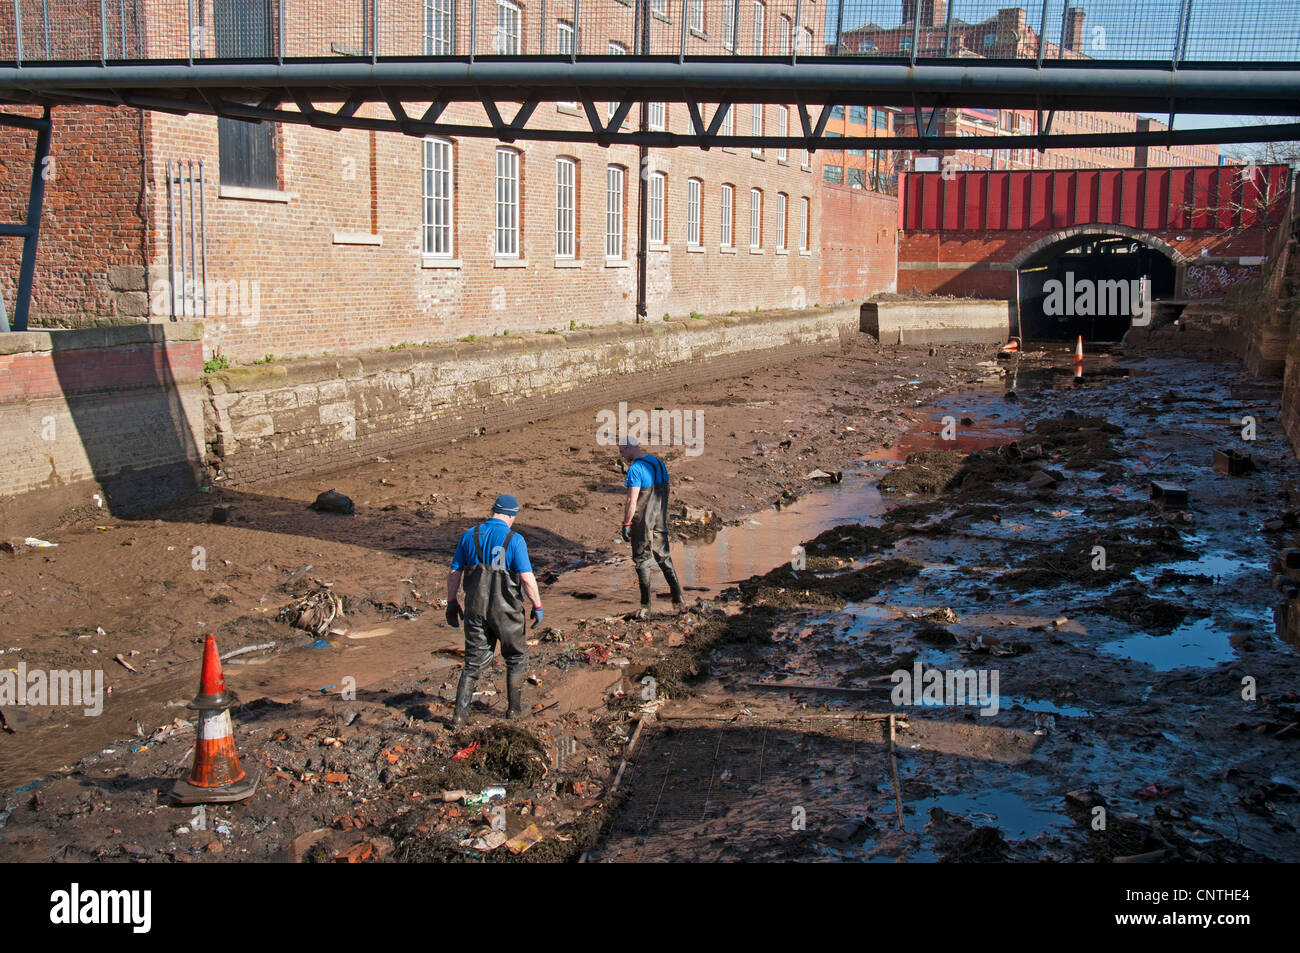 British Waterways workers clearing rubbish from a drained section of the Rochdale Canal, Ancoats, Manchester, England, - Stock Image